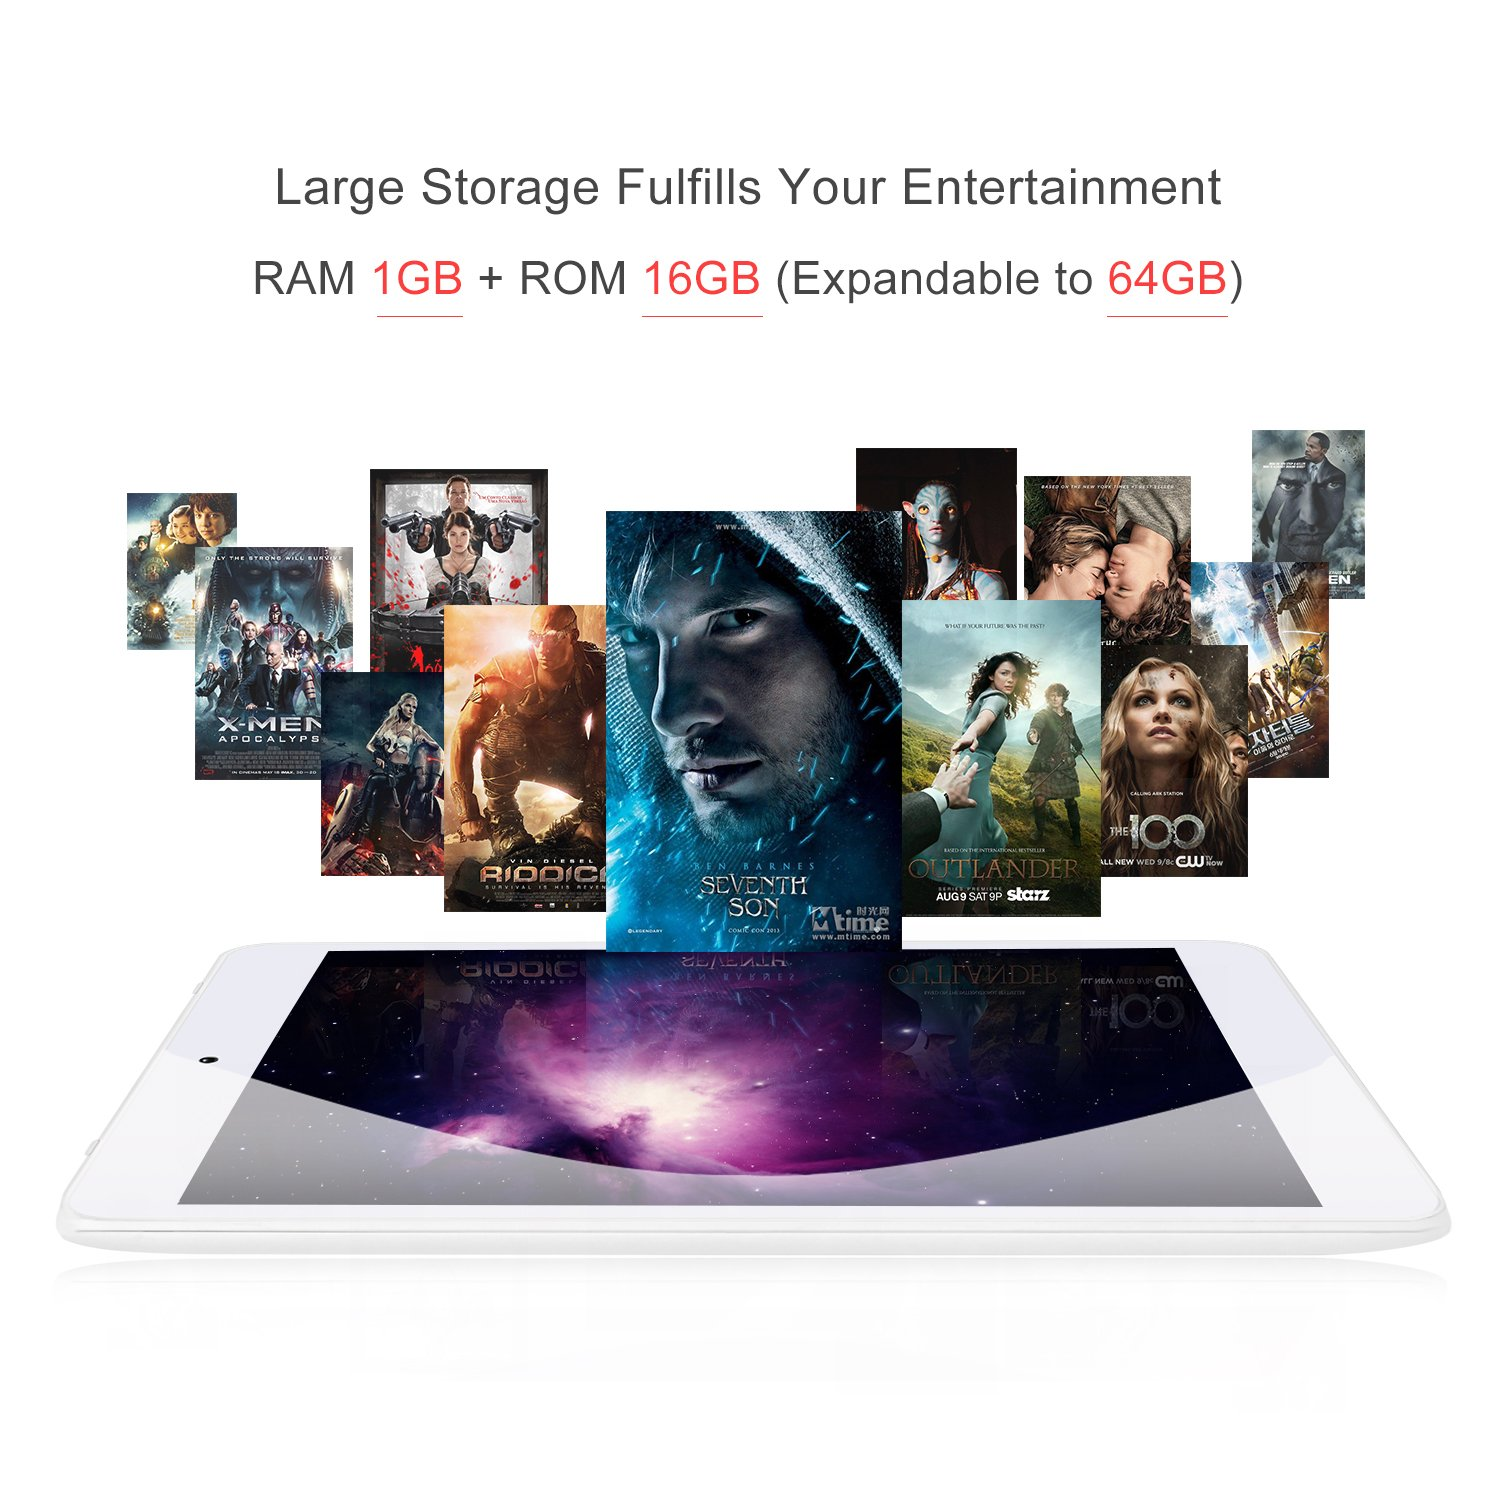 """7.85"""" Tablet Android Google 7.0, 1GB/16GB, 1.3gHz Quad Core,768x1024 IPS HD Display,Dual Camera, Microsoft Mini HDMI Bluetooth G-Sensor Supported,GMS Certified,iRULU eXpro 5 S Tablet (X5 S)-White by iRULU (Image #5)"""